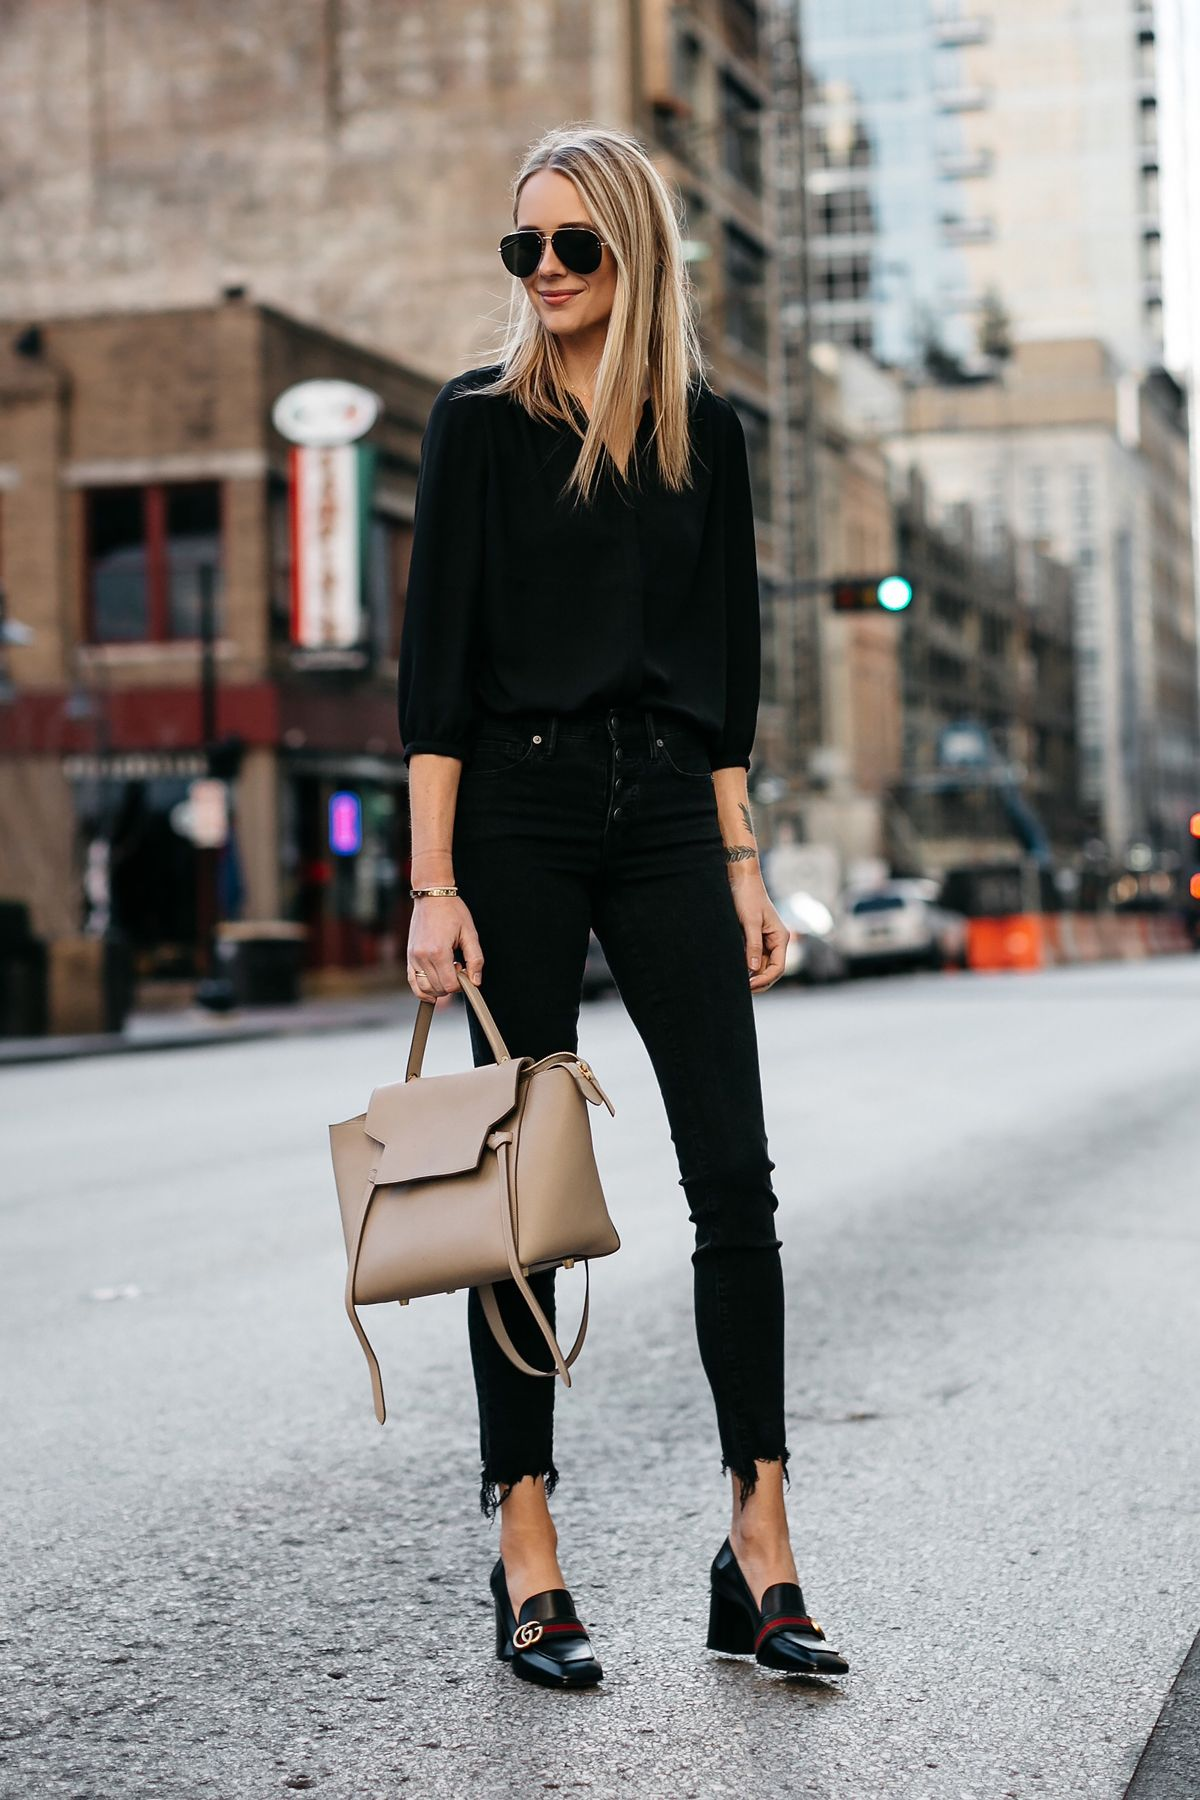 fffab542b24d Blonde Woman Wearing Black Shirt Madewell Black Ripped Hem Skinny Jeans  Gucci Black Peyton Block Heel